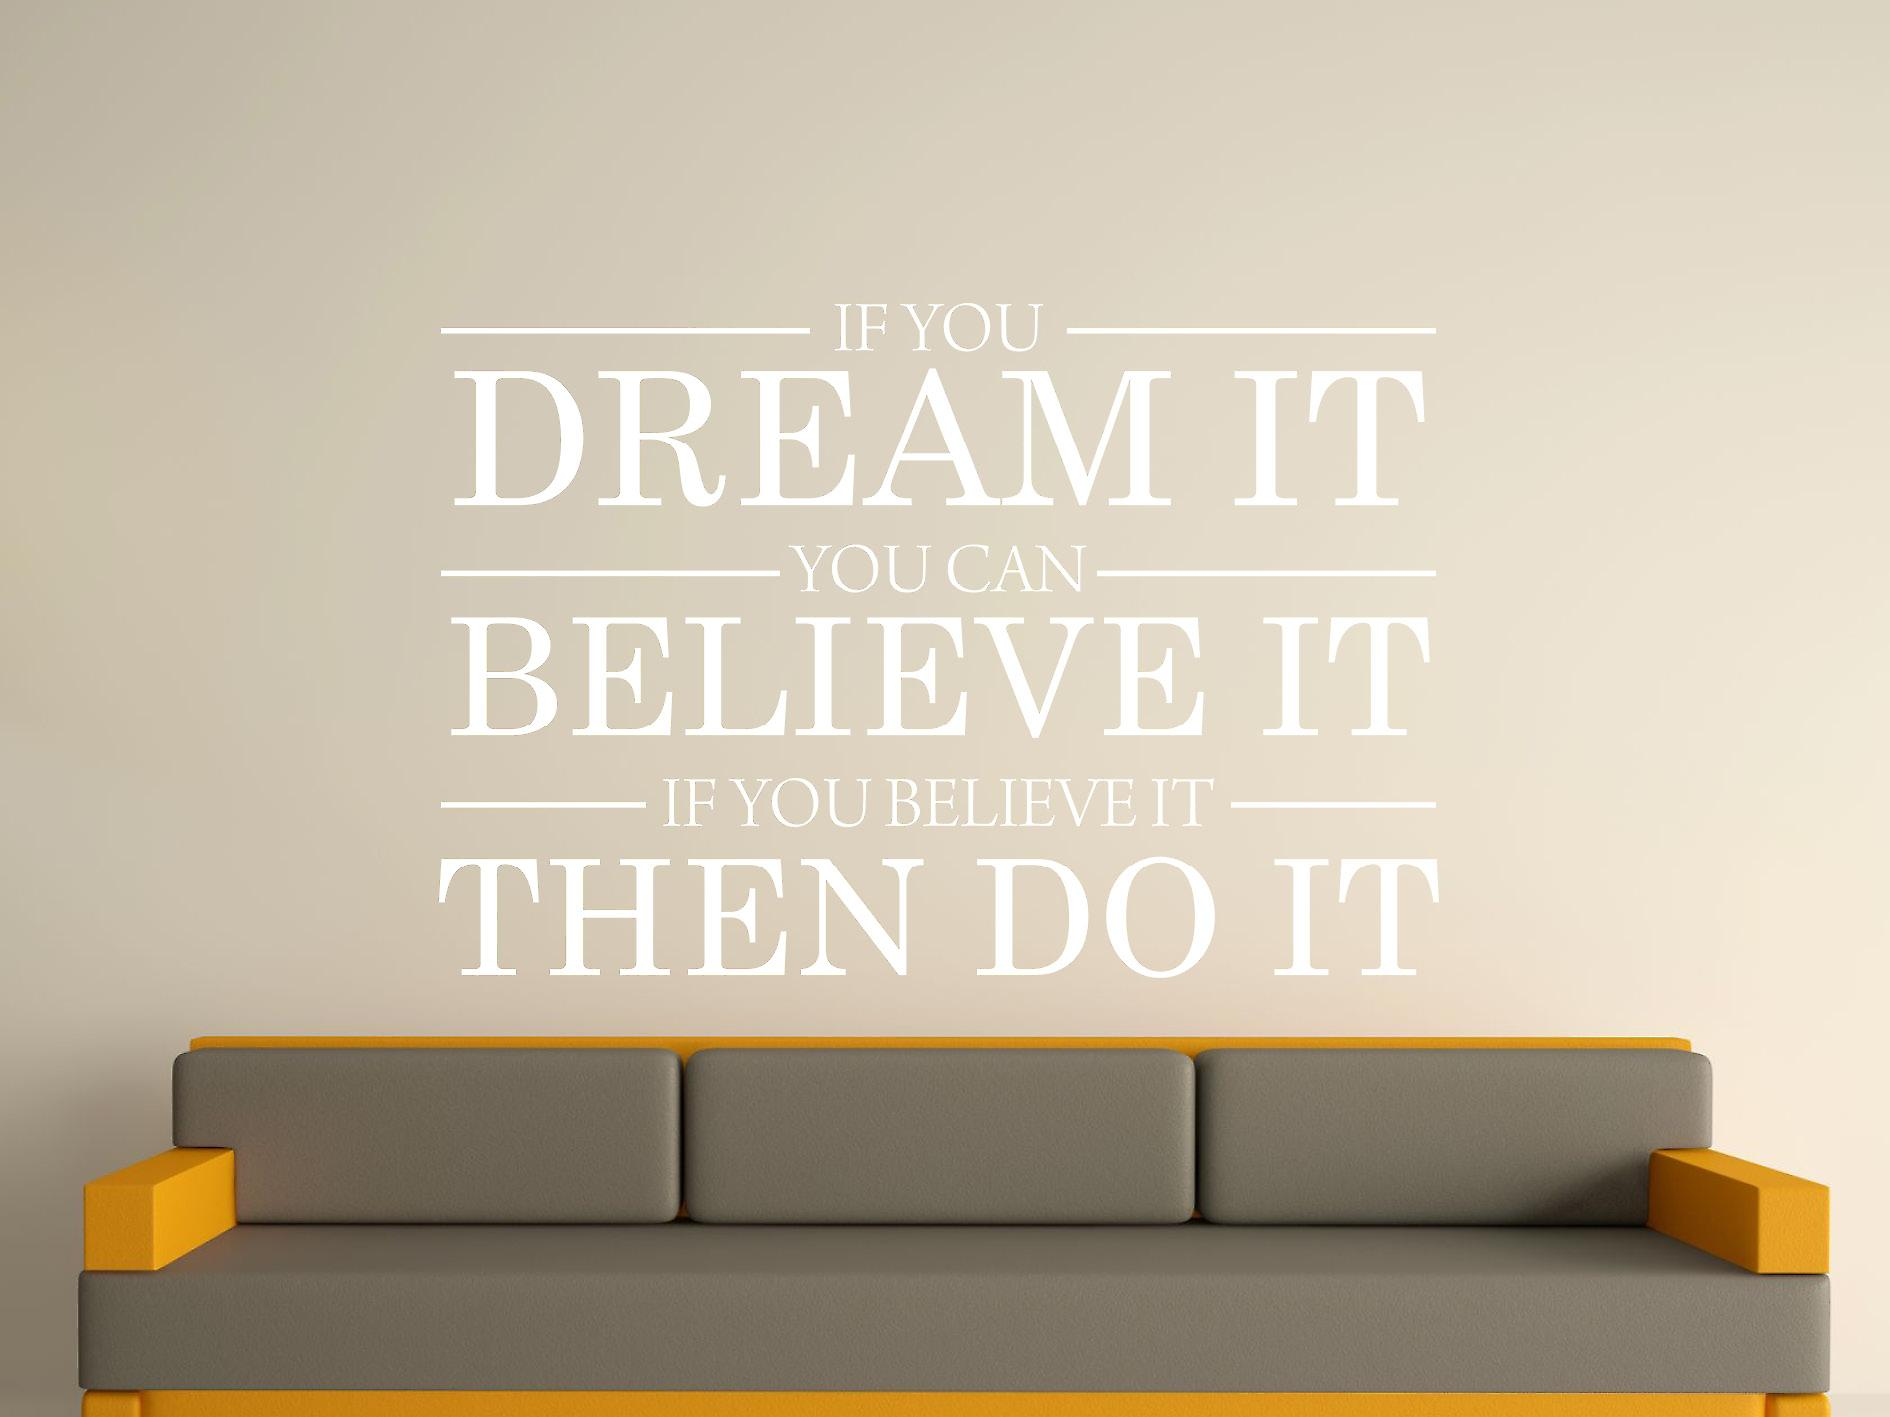 Dream It Believe It Do It Wall Art Sticker - White